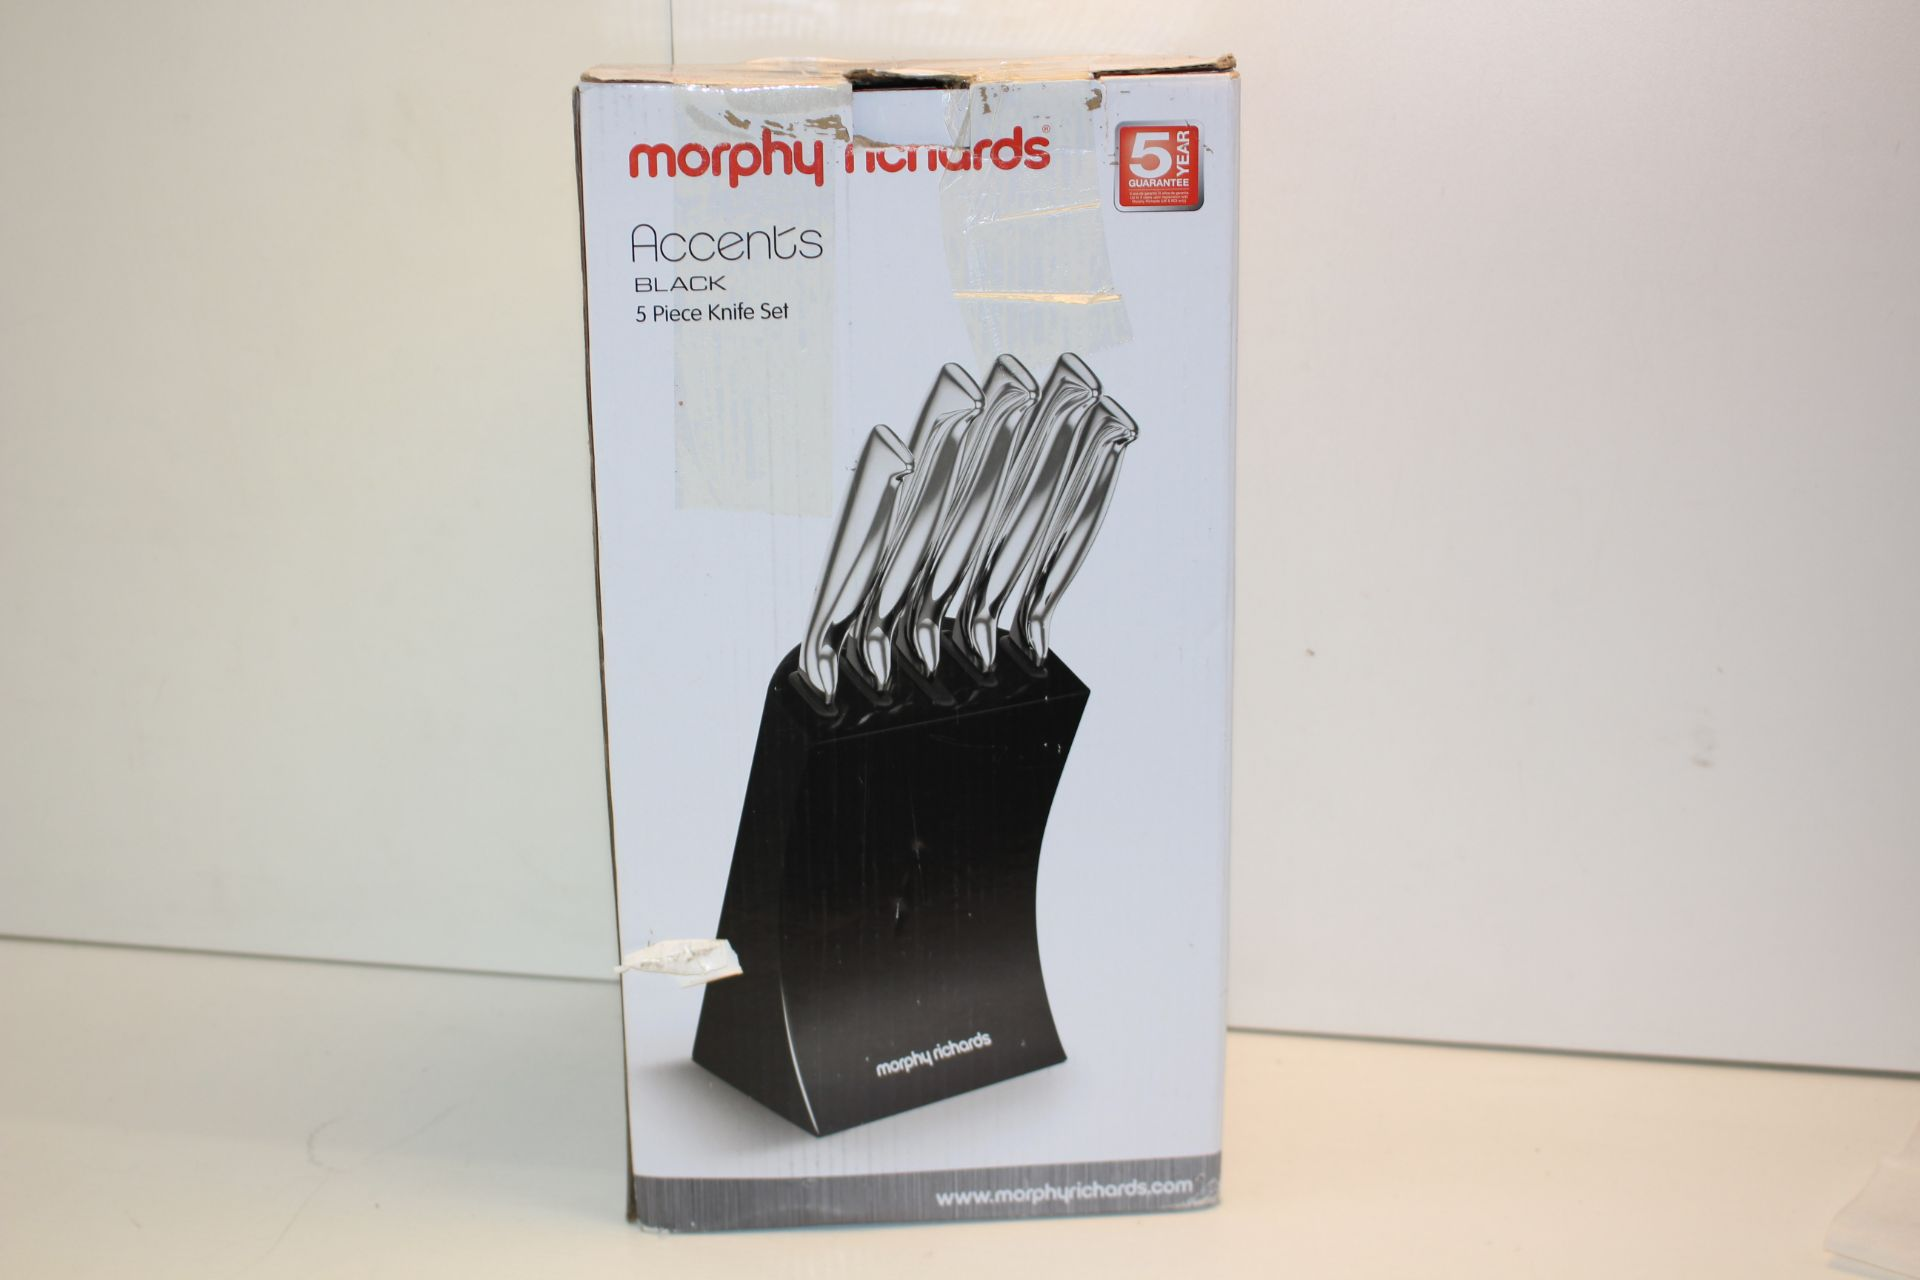 BOXED MORPHY RICHARDS BLACK KNIFE SETCondition ReportAppraisal Available on Request- All Items are